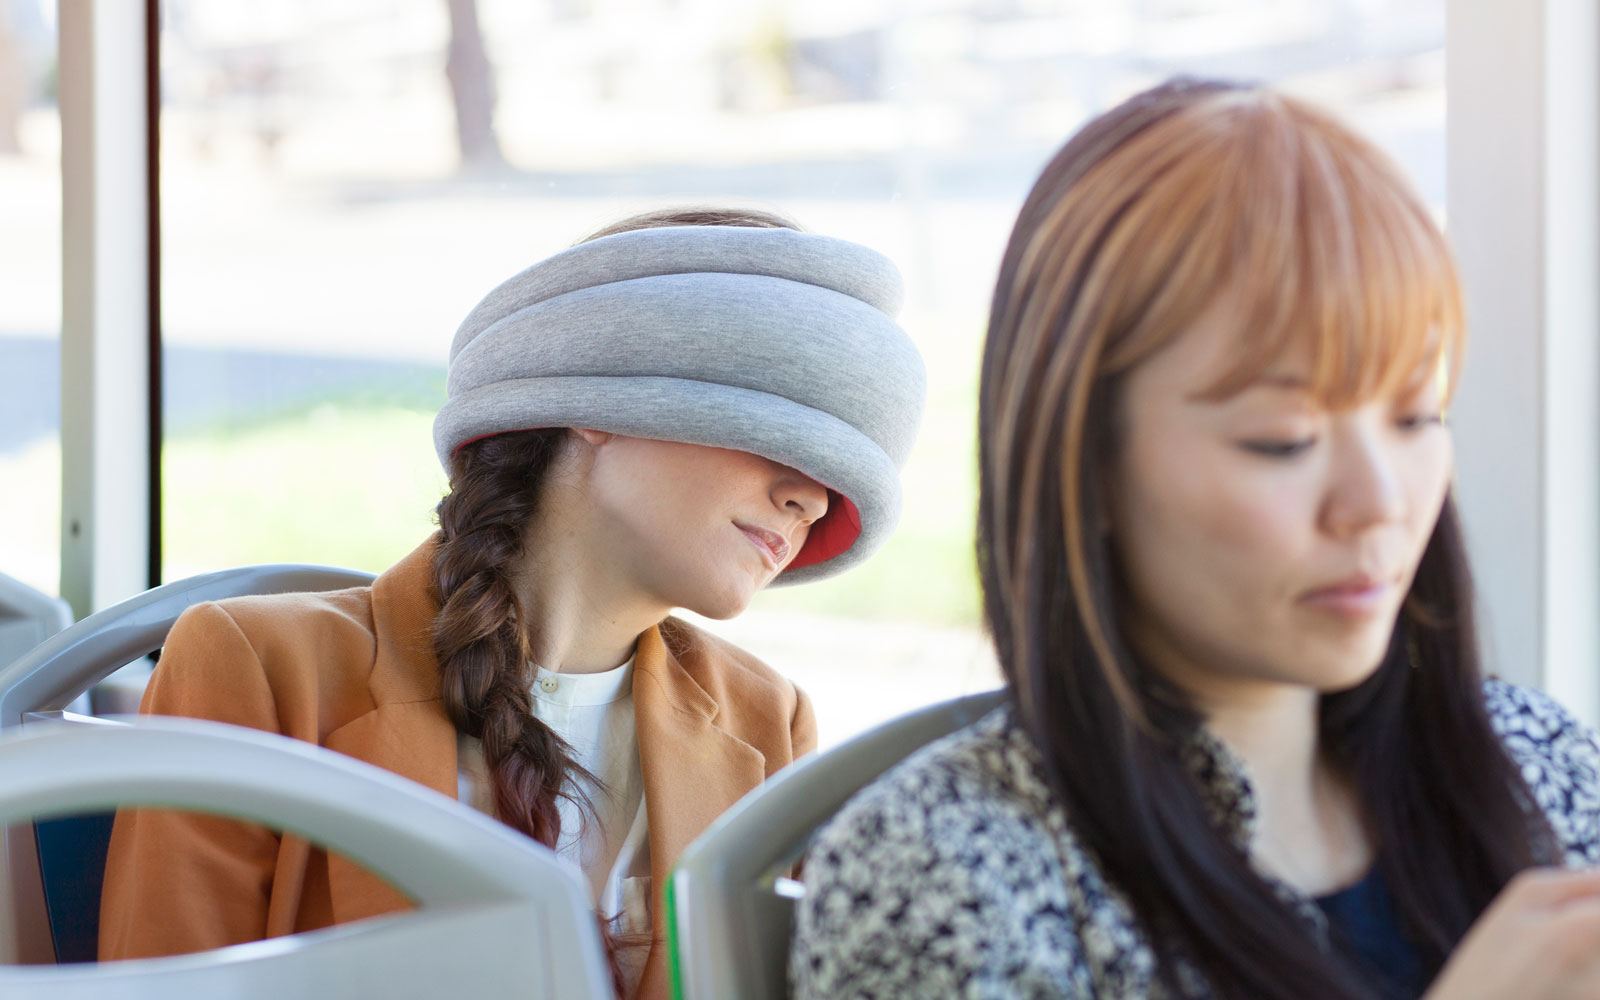 Ostrich pillow can help you sleep on flights.